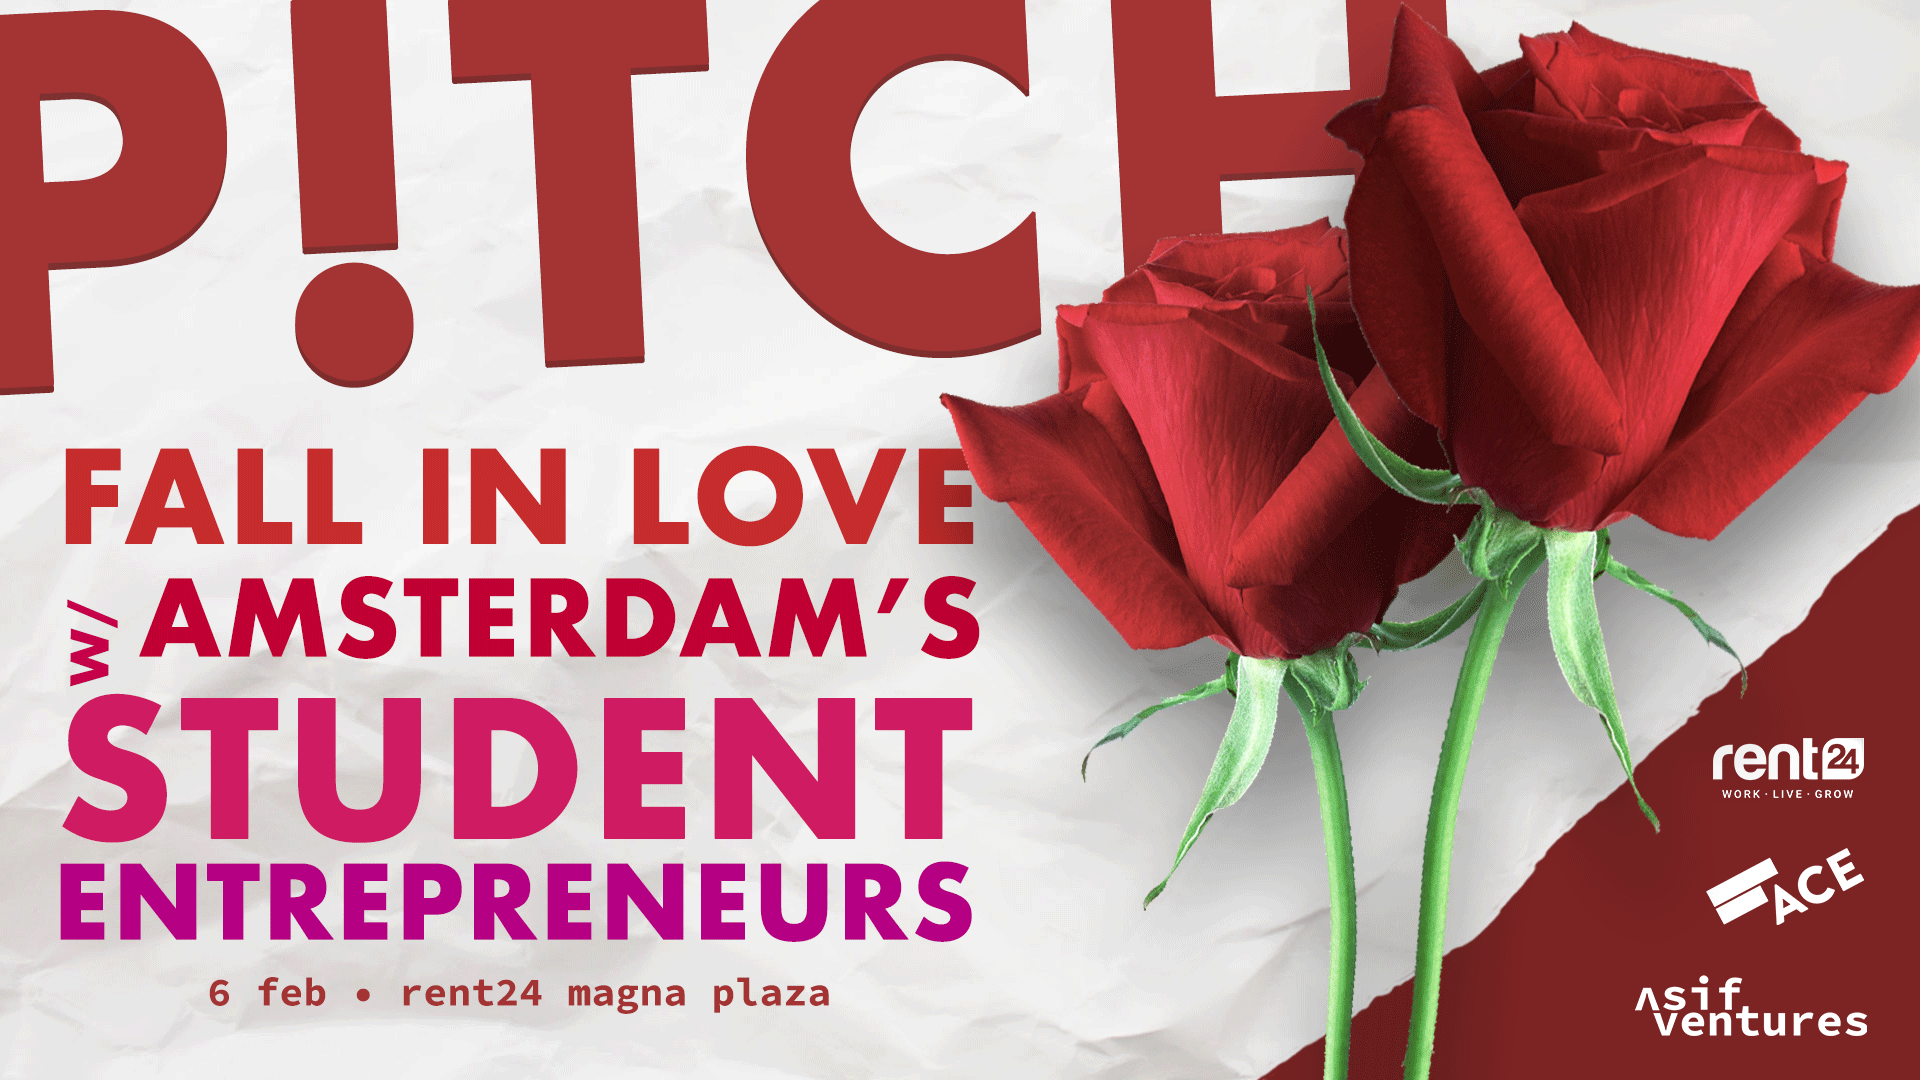 ASIF_Marketing_Pitch_8_ACE_facebook-banner.png